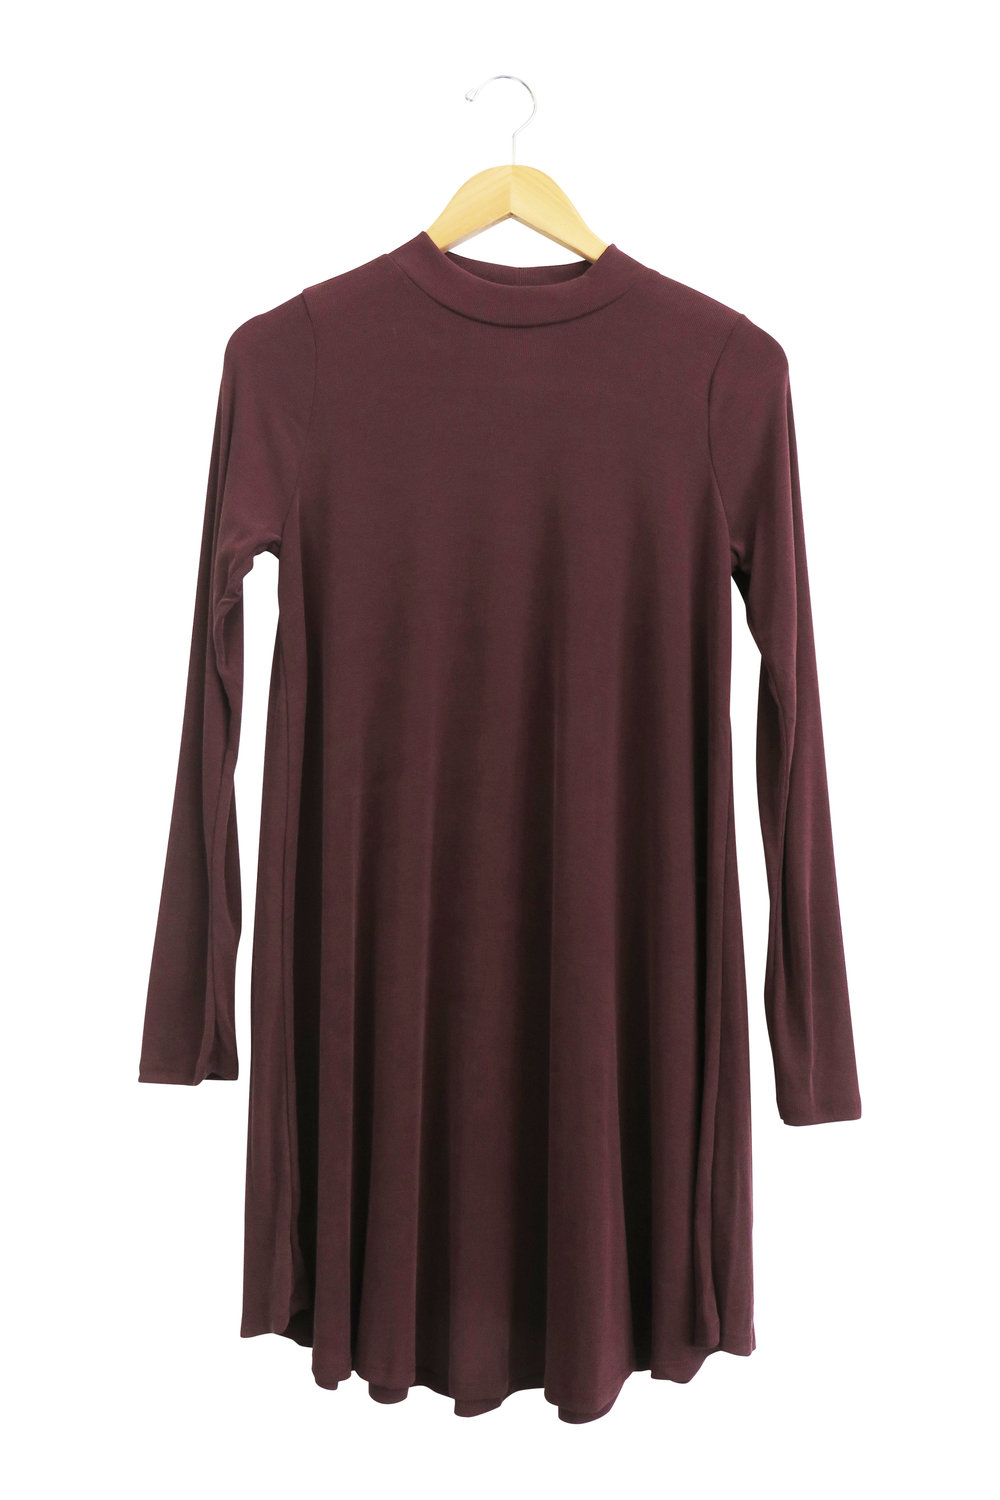 Dark Wine Tunic